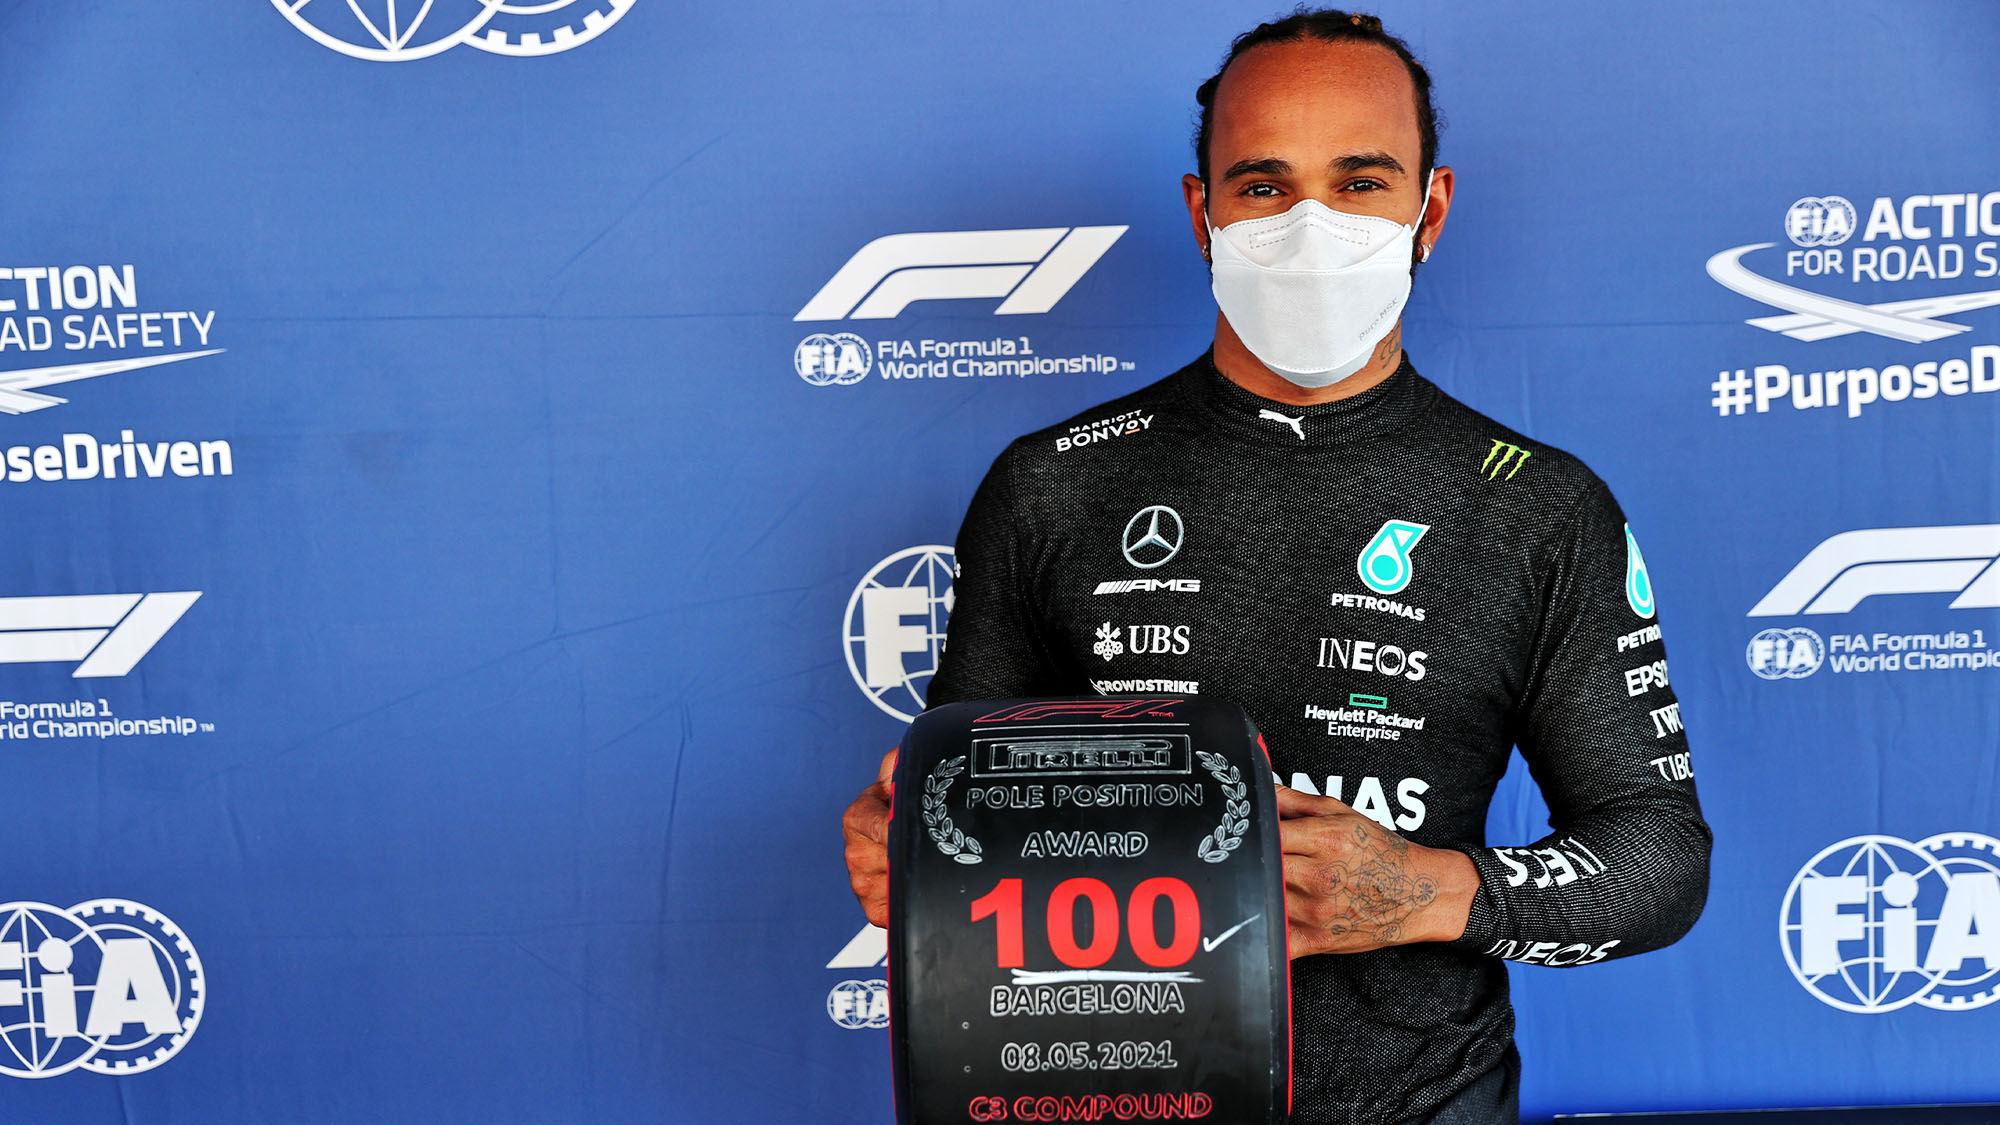 2021 Spanish GP qualifying report: Hamilton makes his tonne